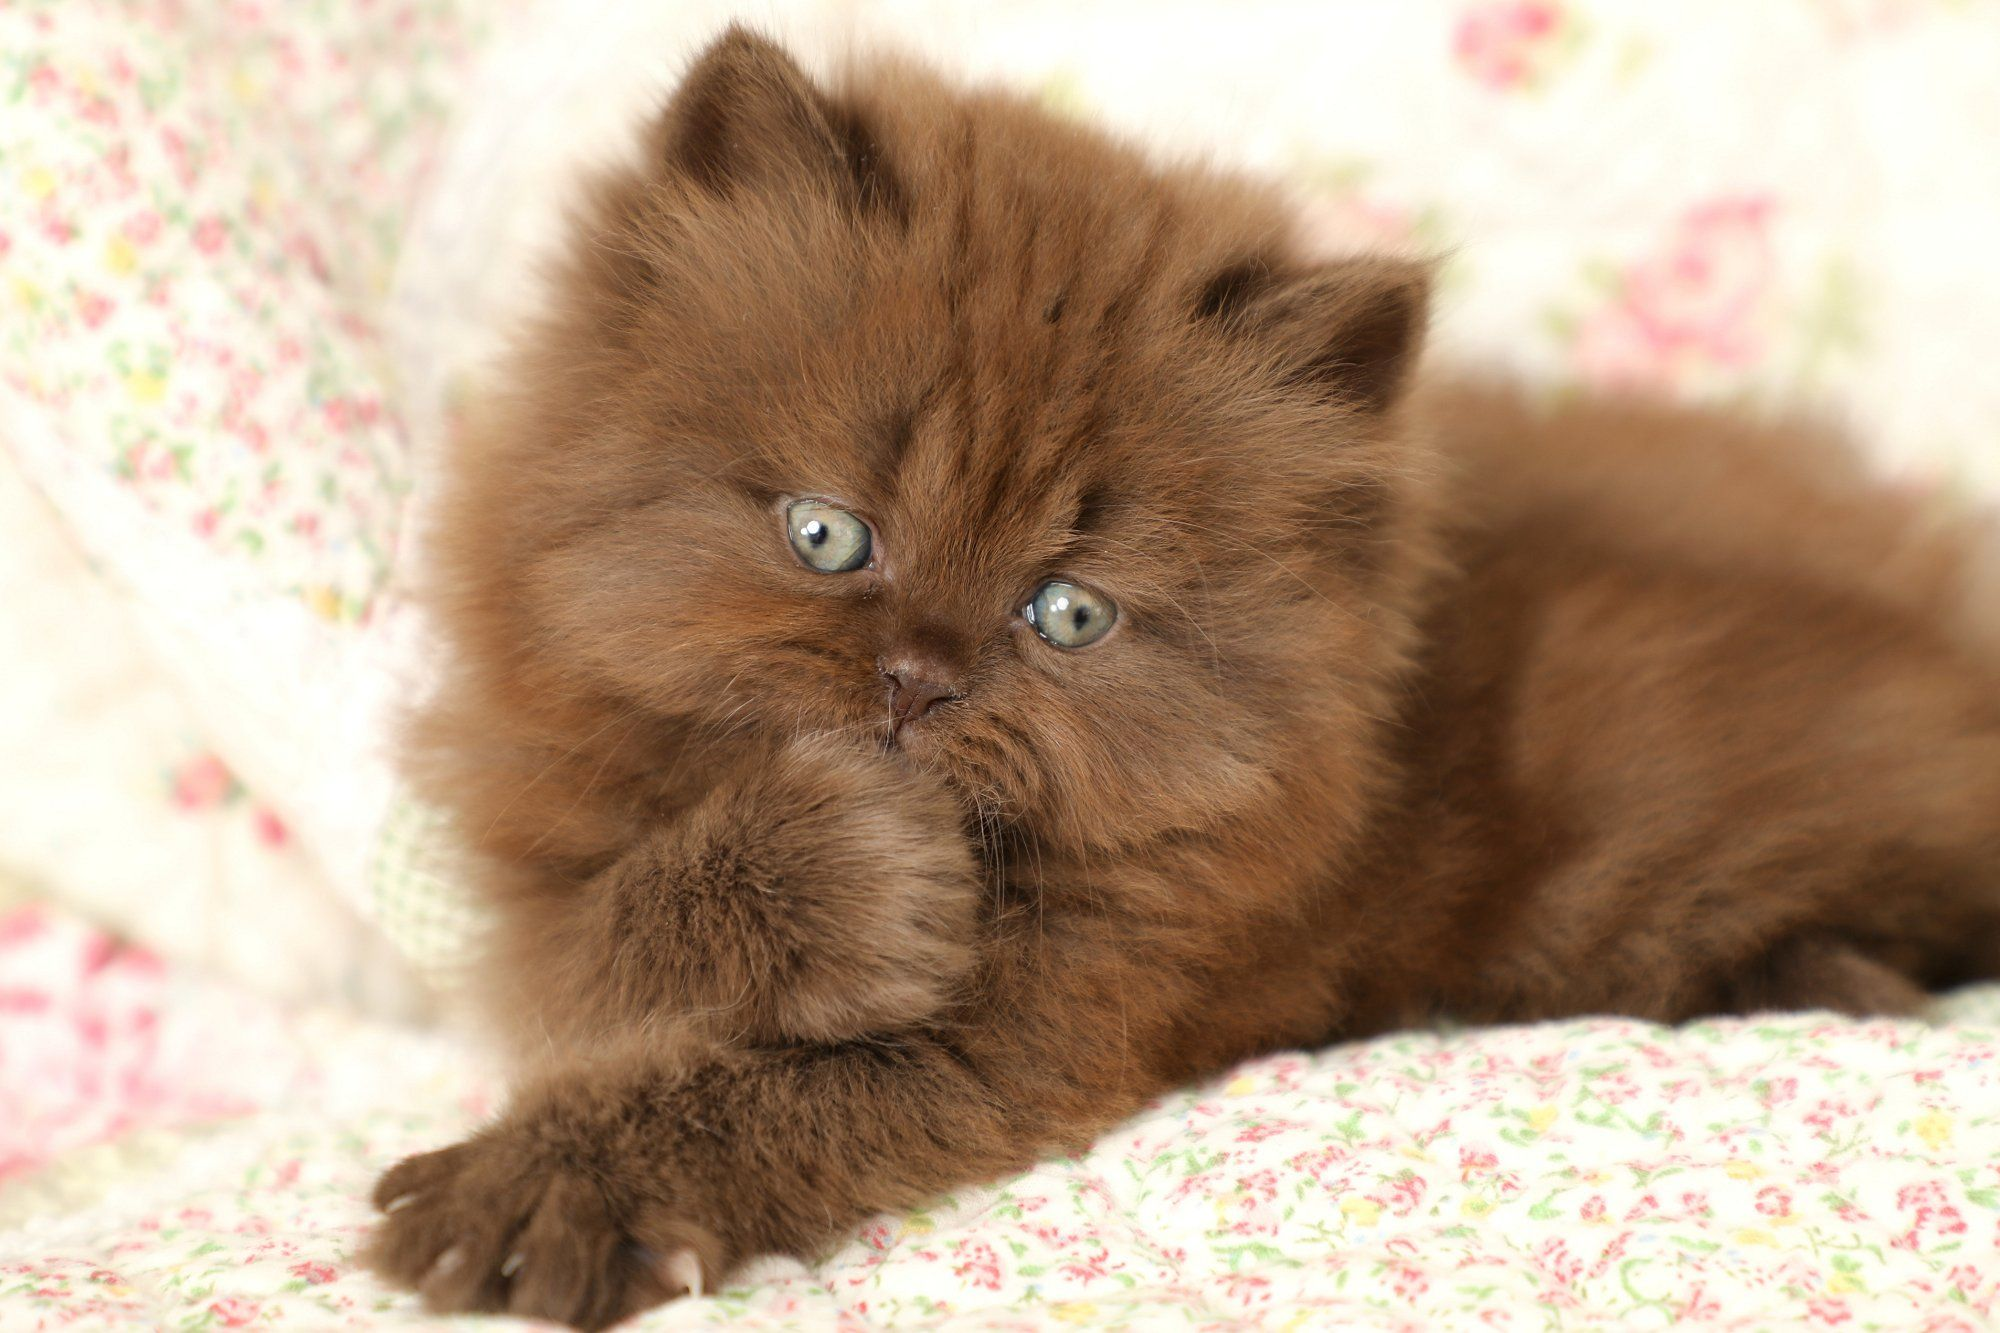 Kisses Chocolate Persian Kitten For Sale Doll Face Persian Kittens The Most Trusted Name In The Business 660 292 2222 Persian Kittens For Sale Persian Kittens Persian Cat Doll Face